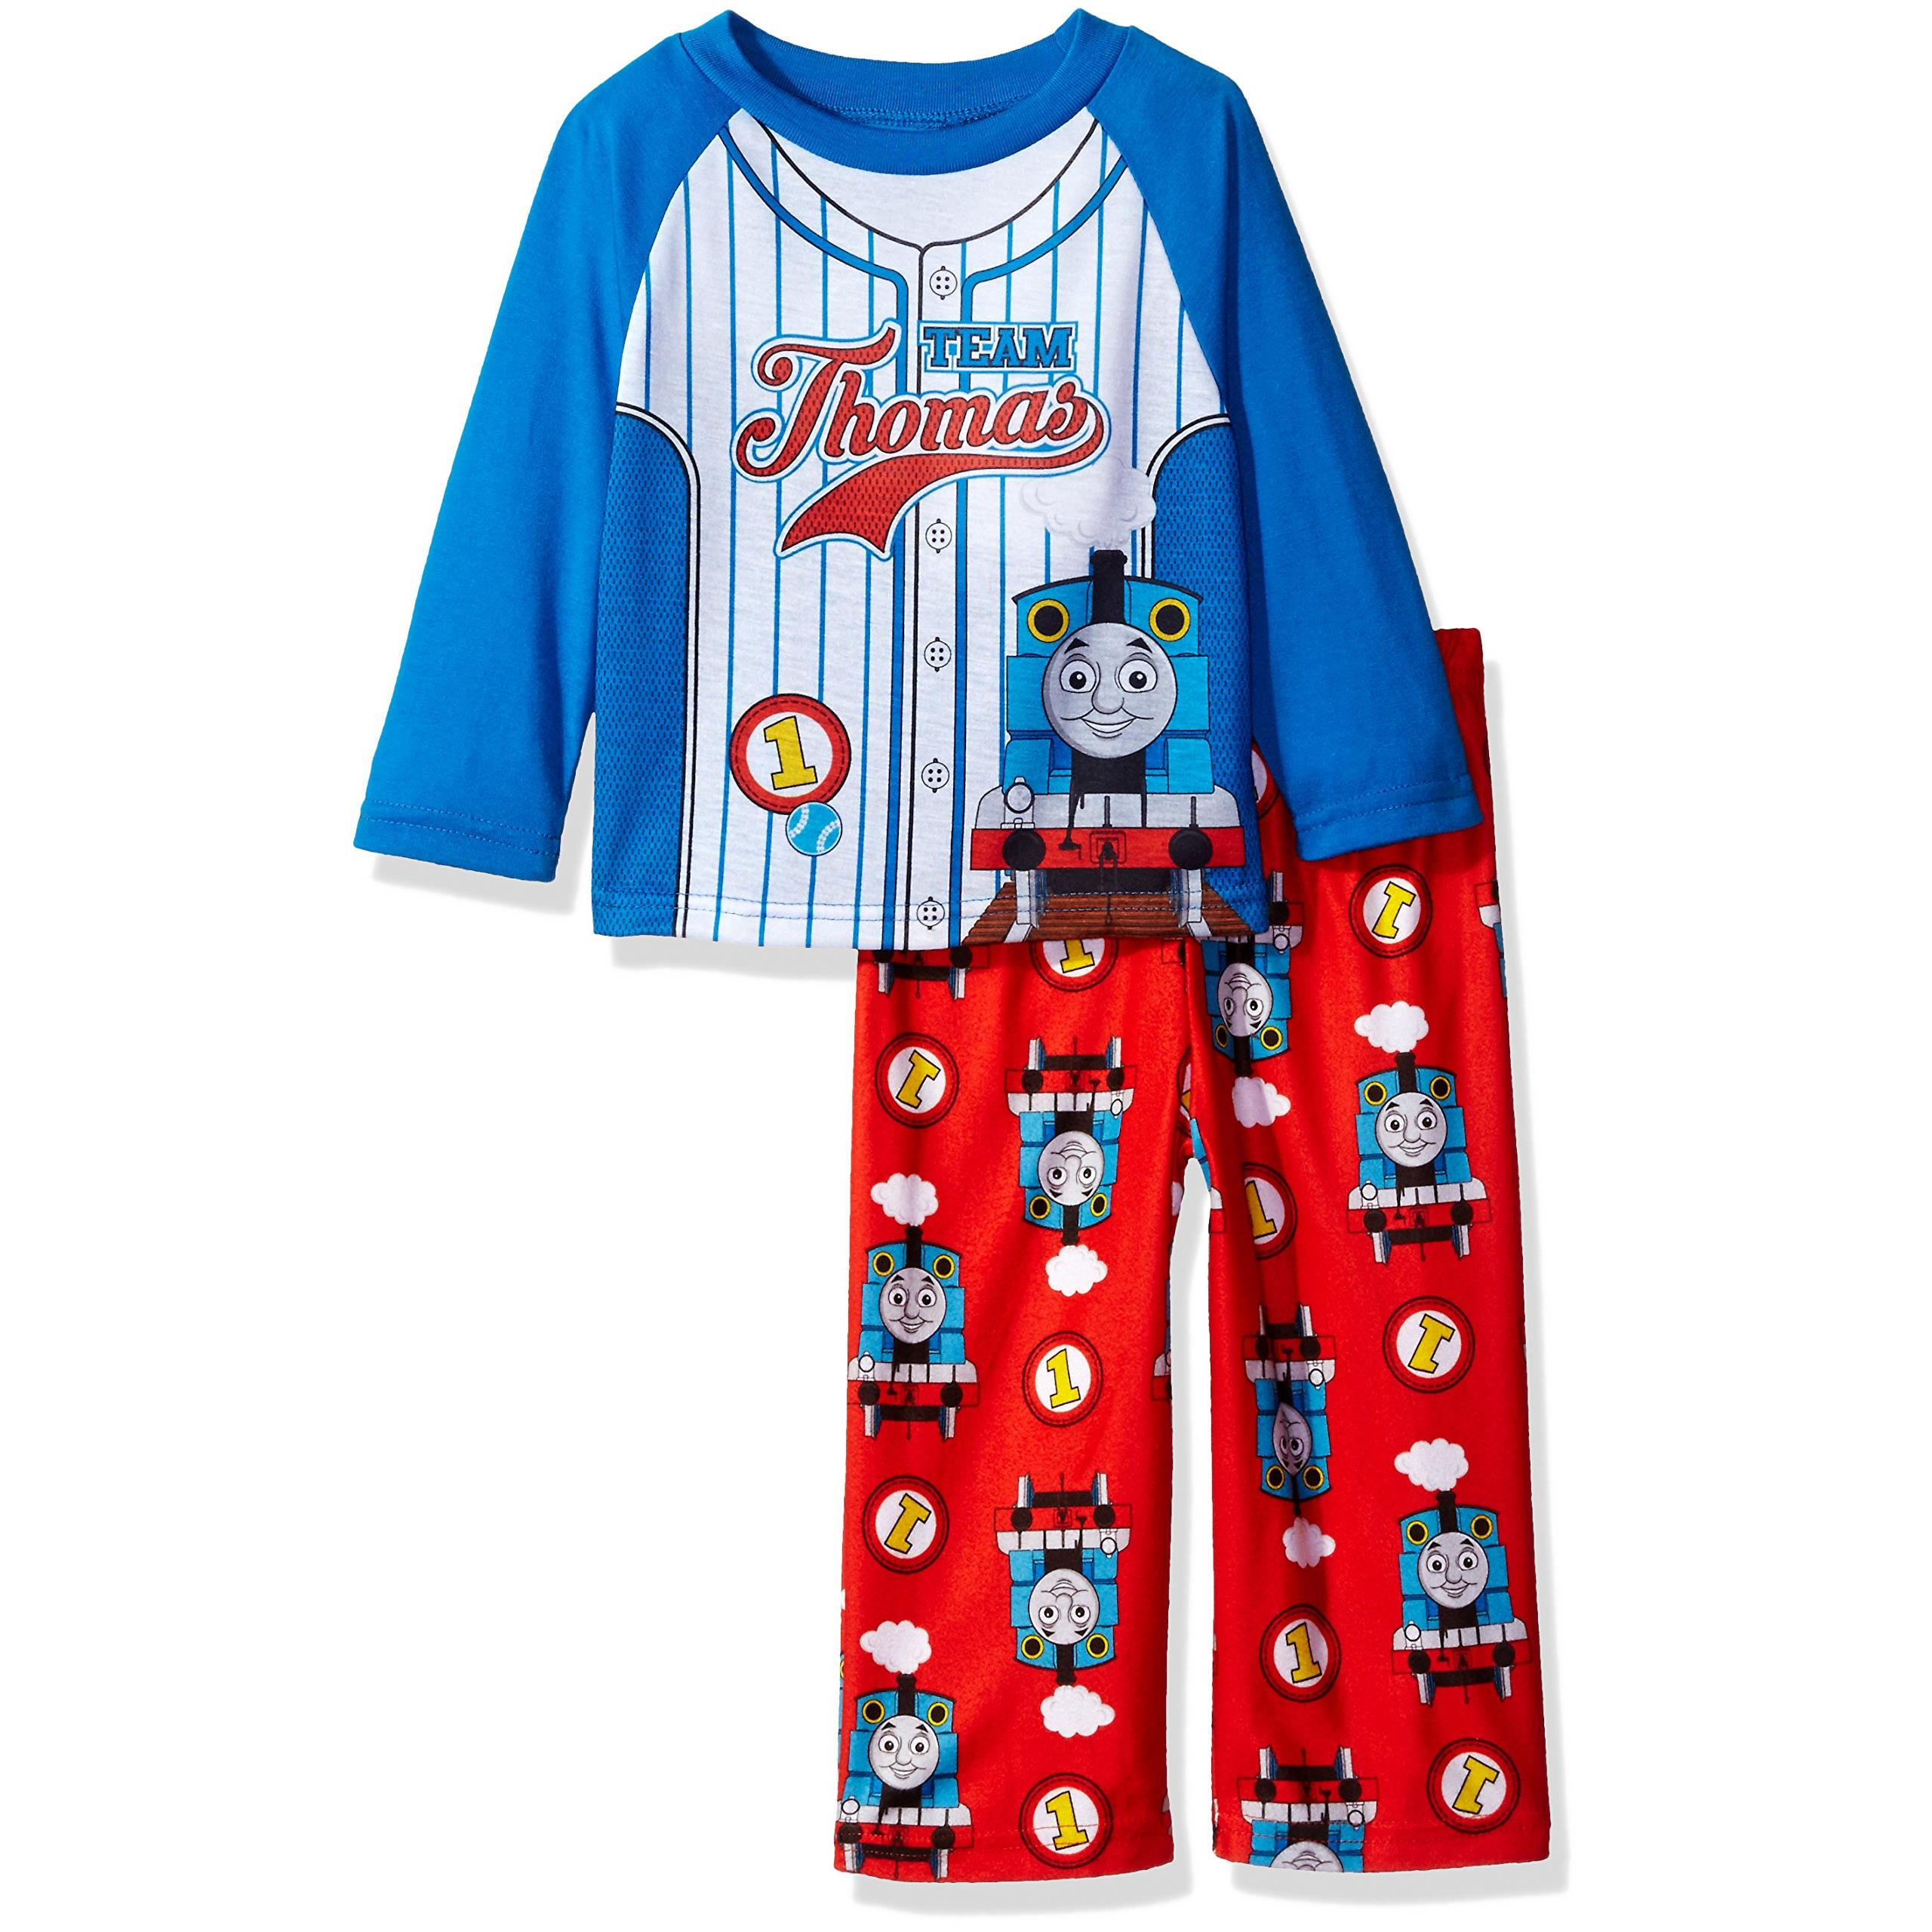 Thomas the Train Toddler Boys' 2-Piece Pajama Set